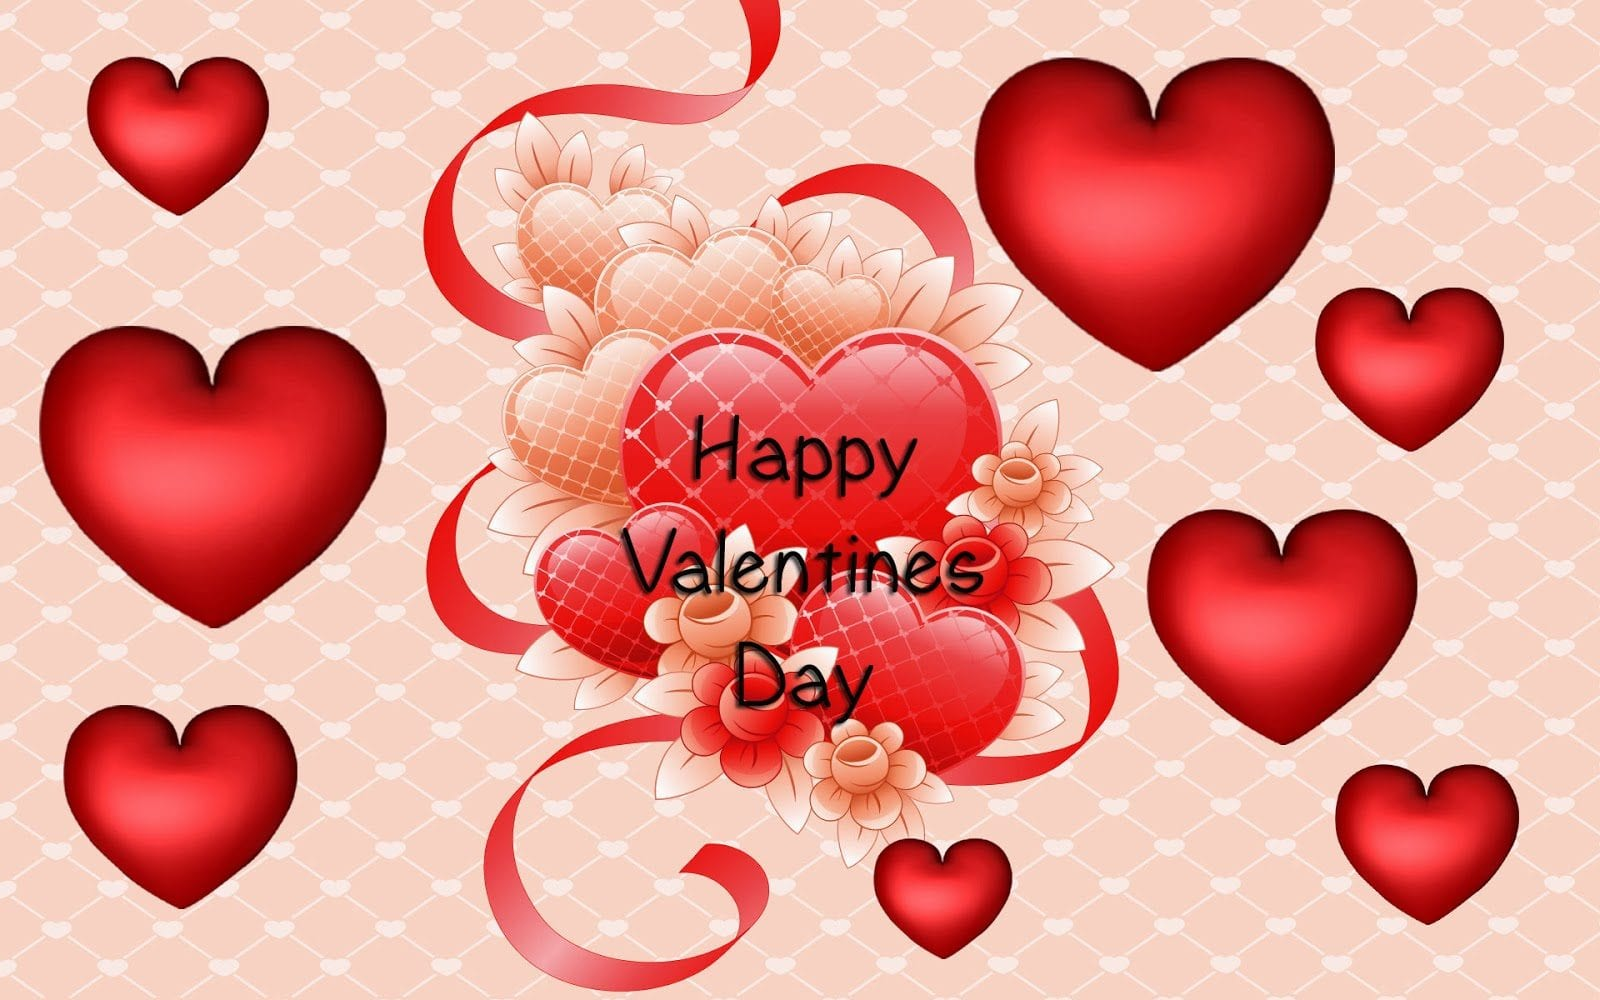 Happy-Valentine-Day-Best-Wishes-Cards-76